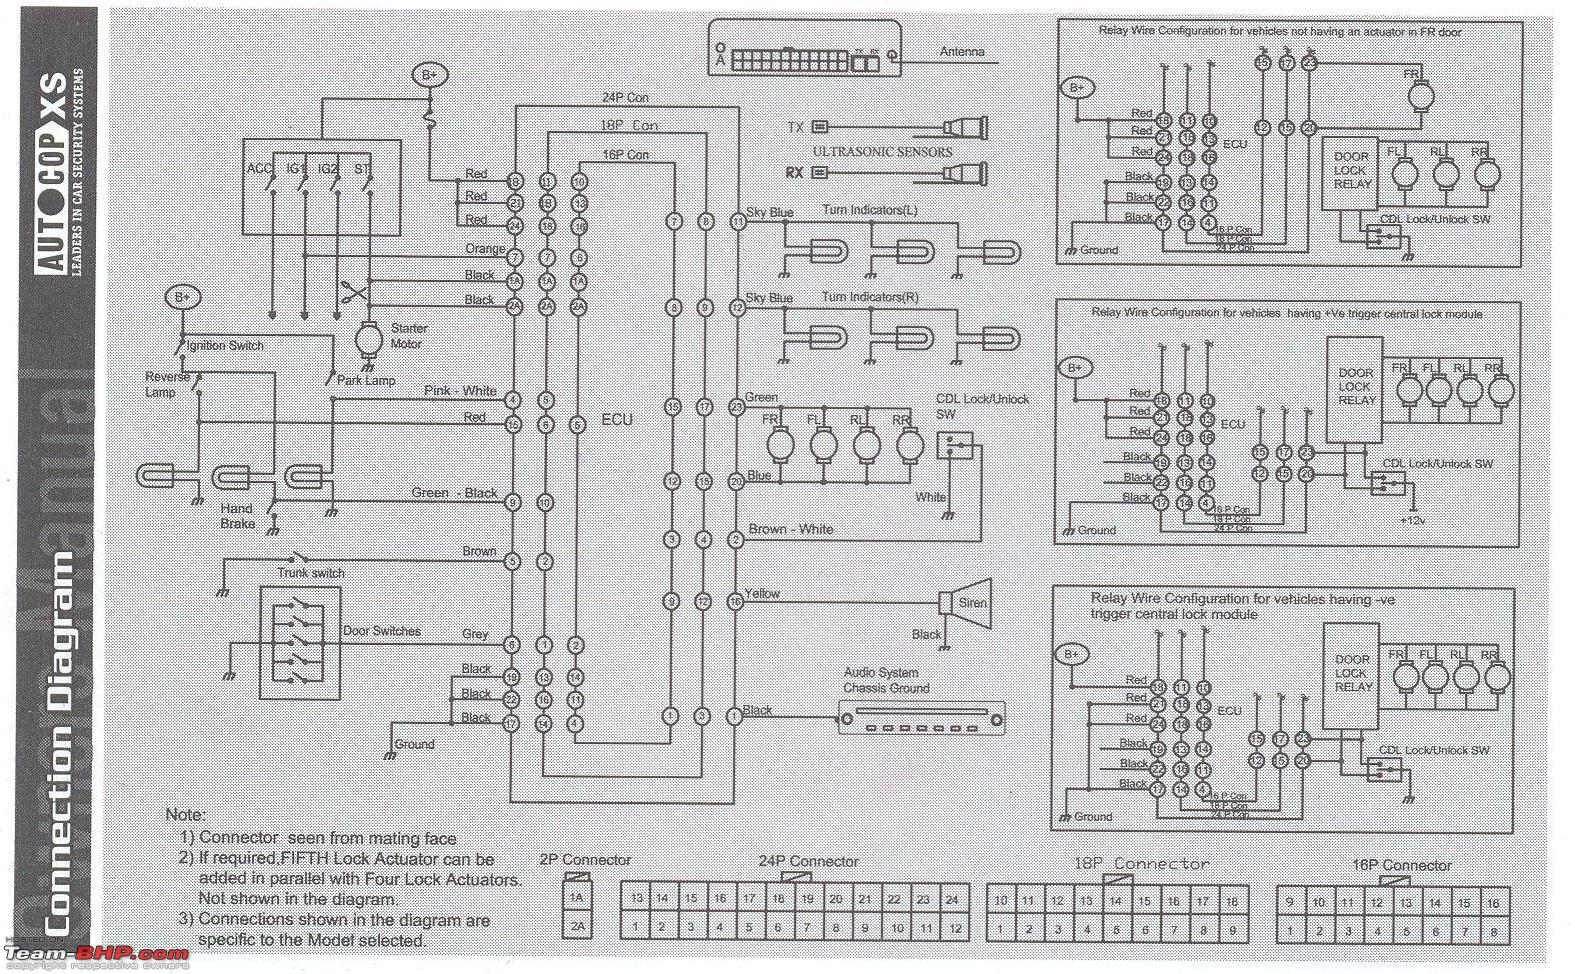 autocop xs manual/wiring diagram-image-5 jpg